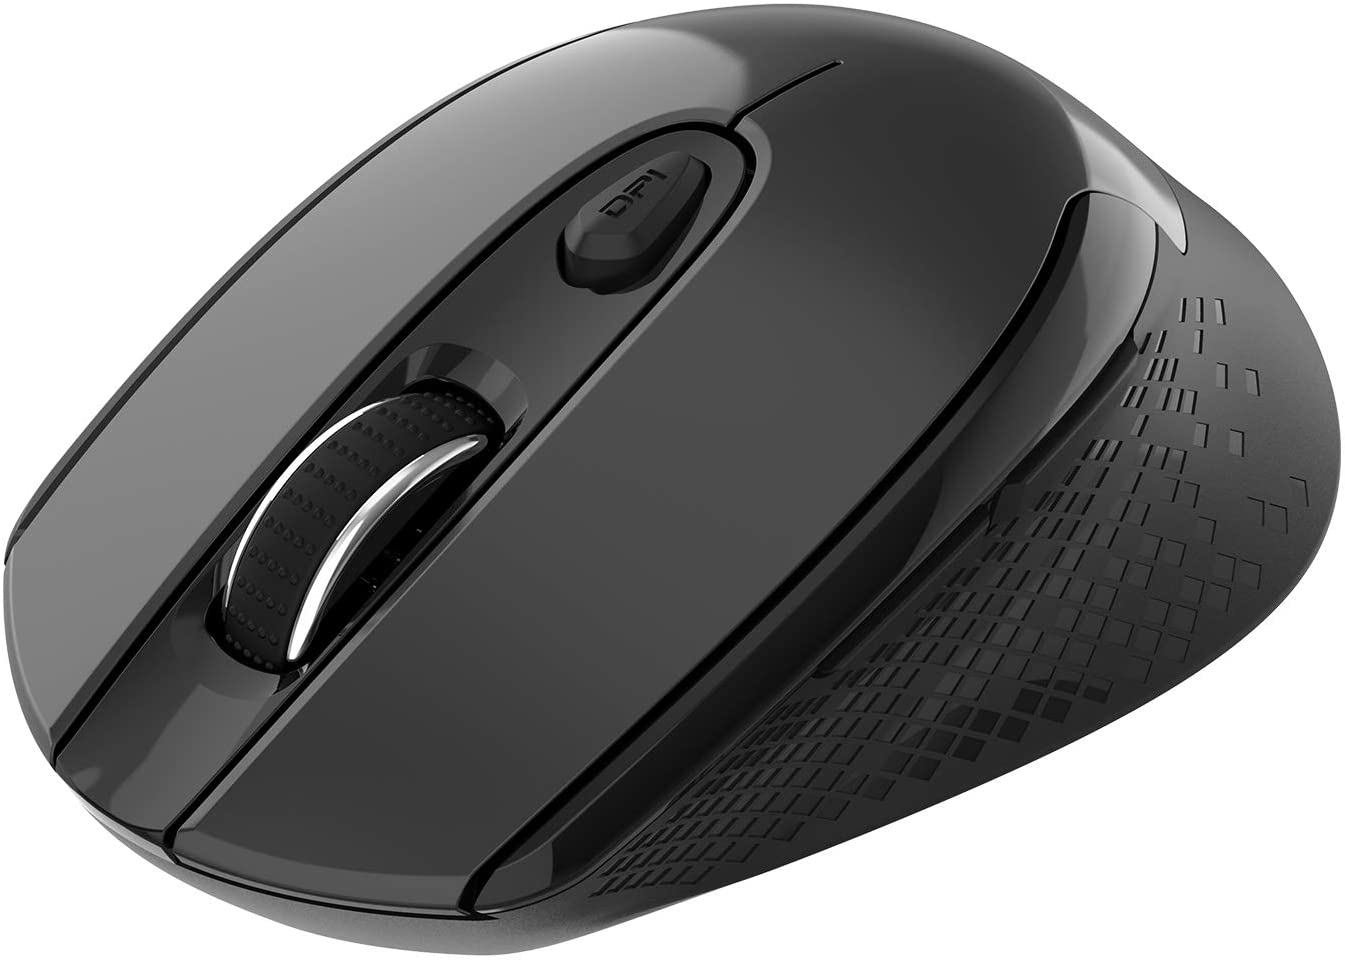 Wireless Mouse, 2.4G Wireless Ergonomic Optical Mouse, cimetech Slim Silent Mouse with USB Receiver and 3 Adjustable DPI Cordless Computer Mouse for Laptop, Desktop, MacBook, PC (Black)